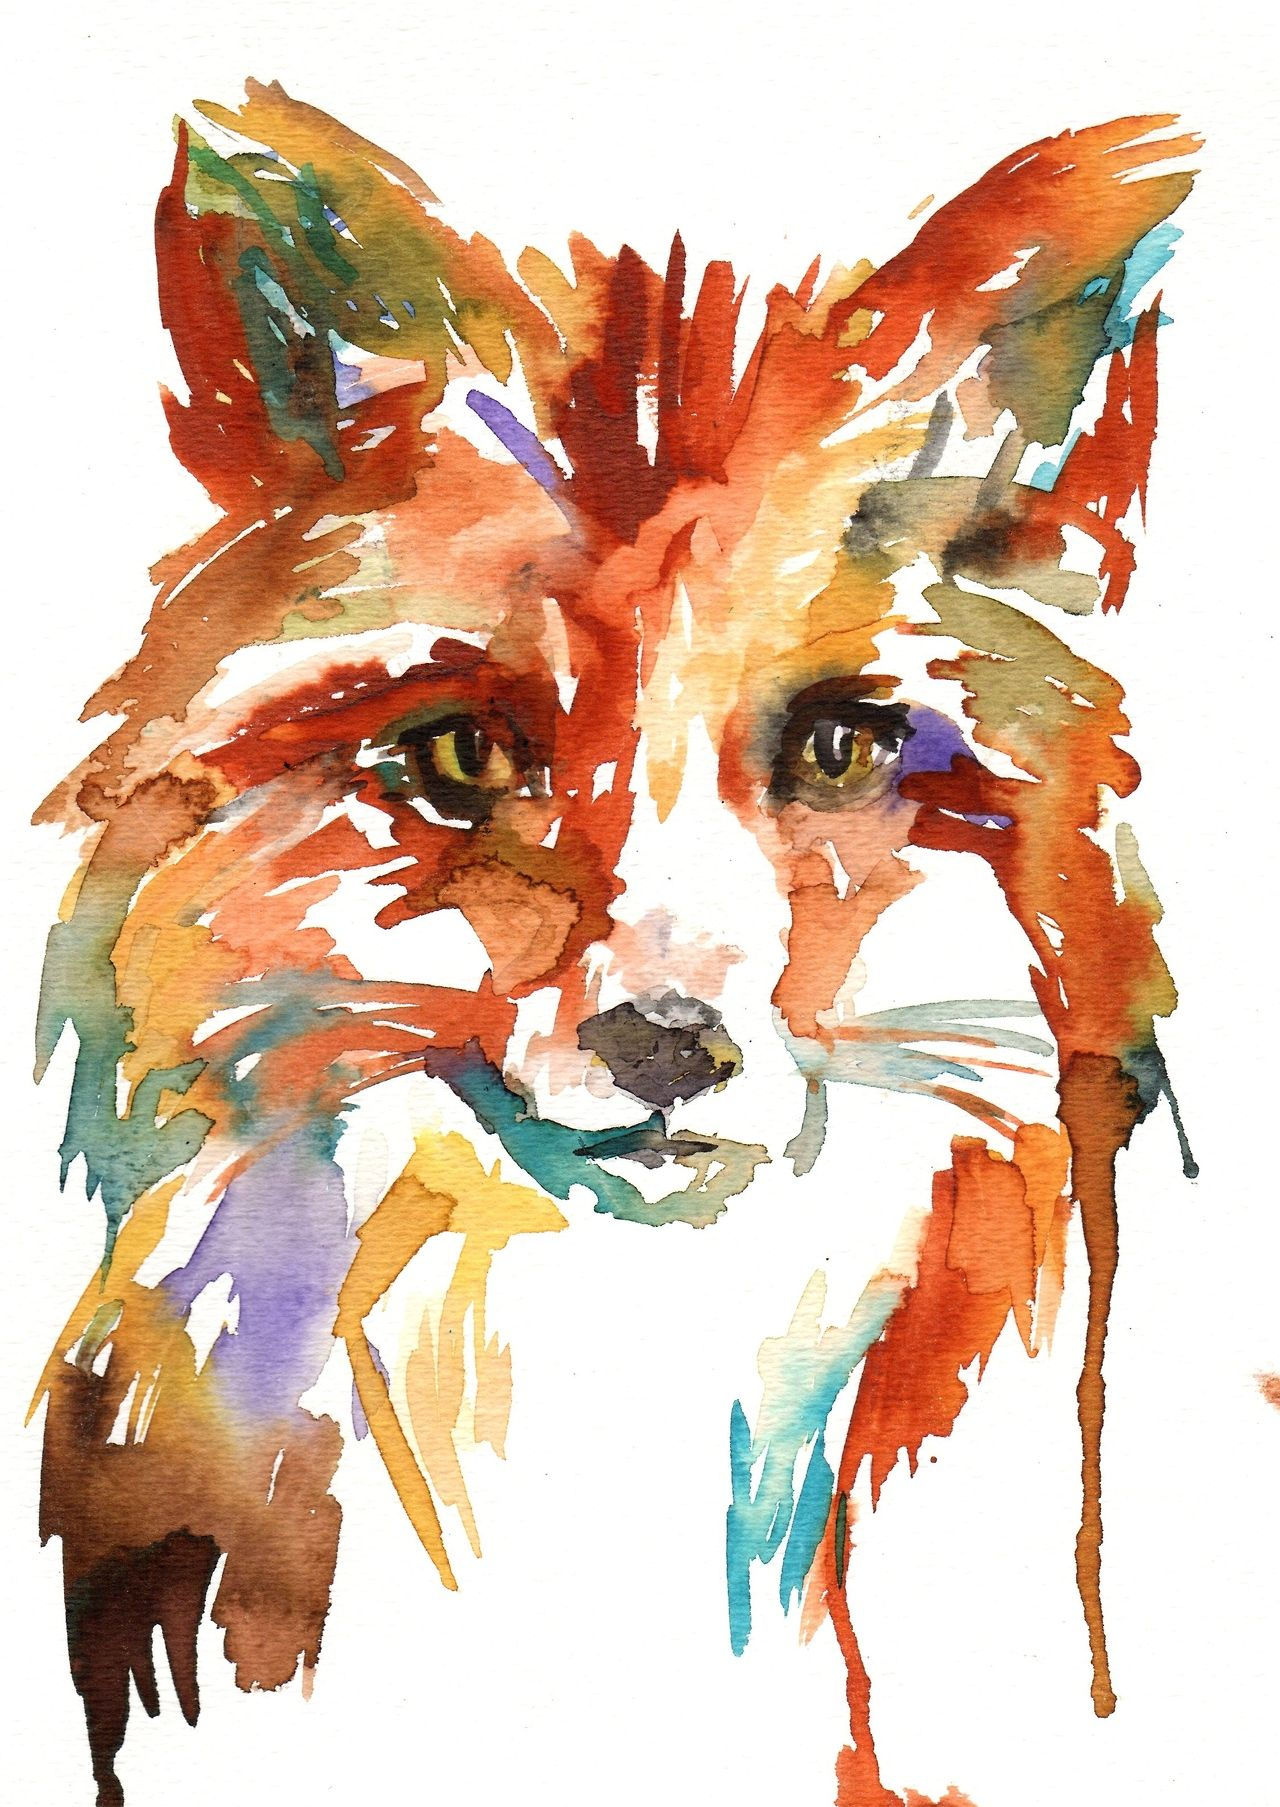 Abstract Fox Art Art Collective Fox 水彩画 水彩 画